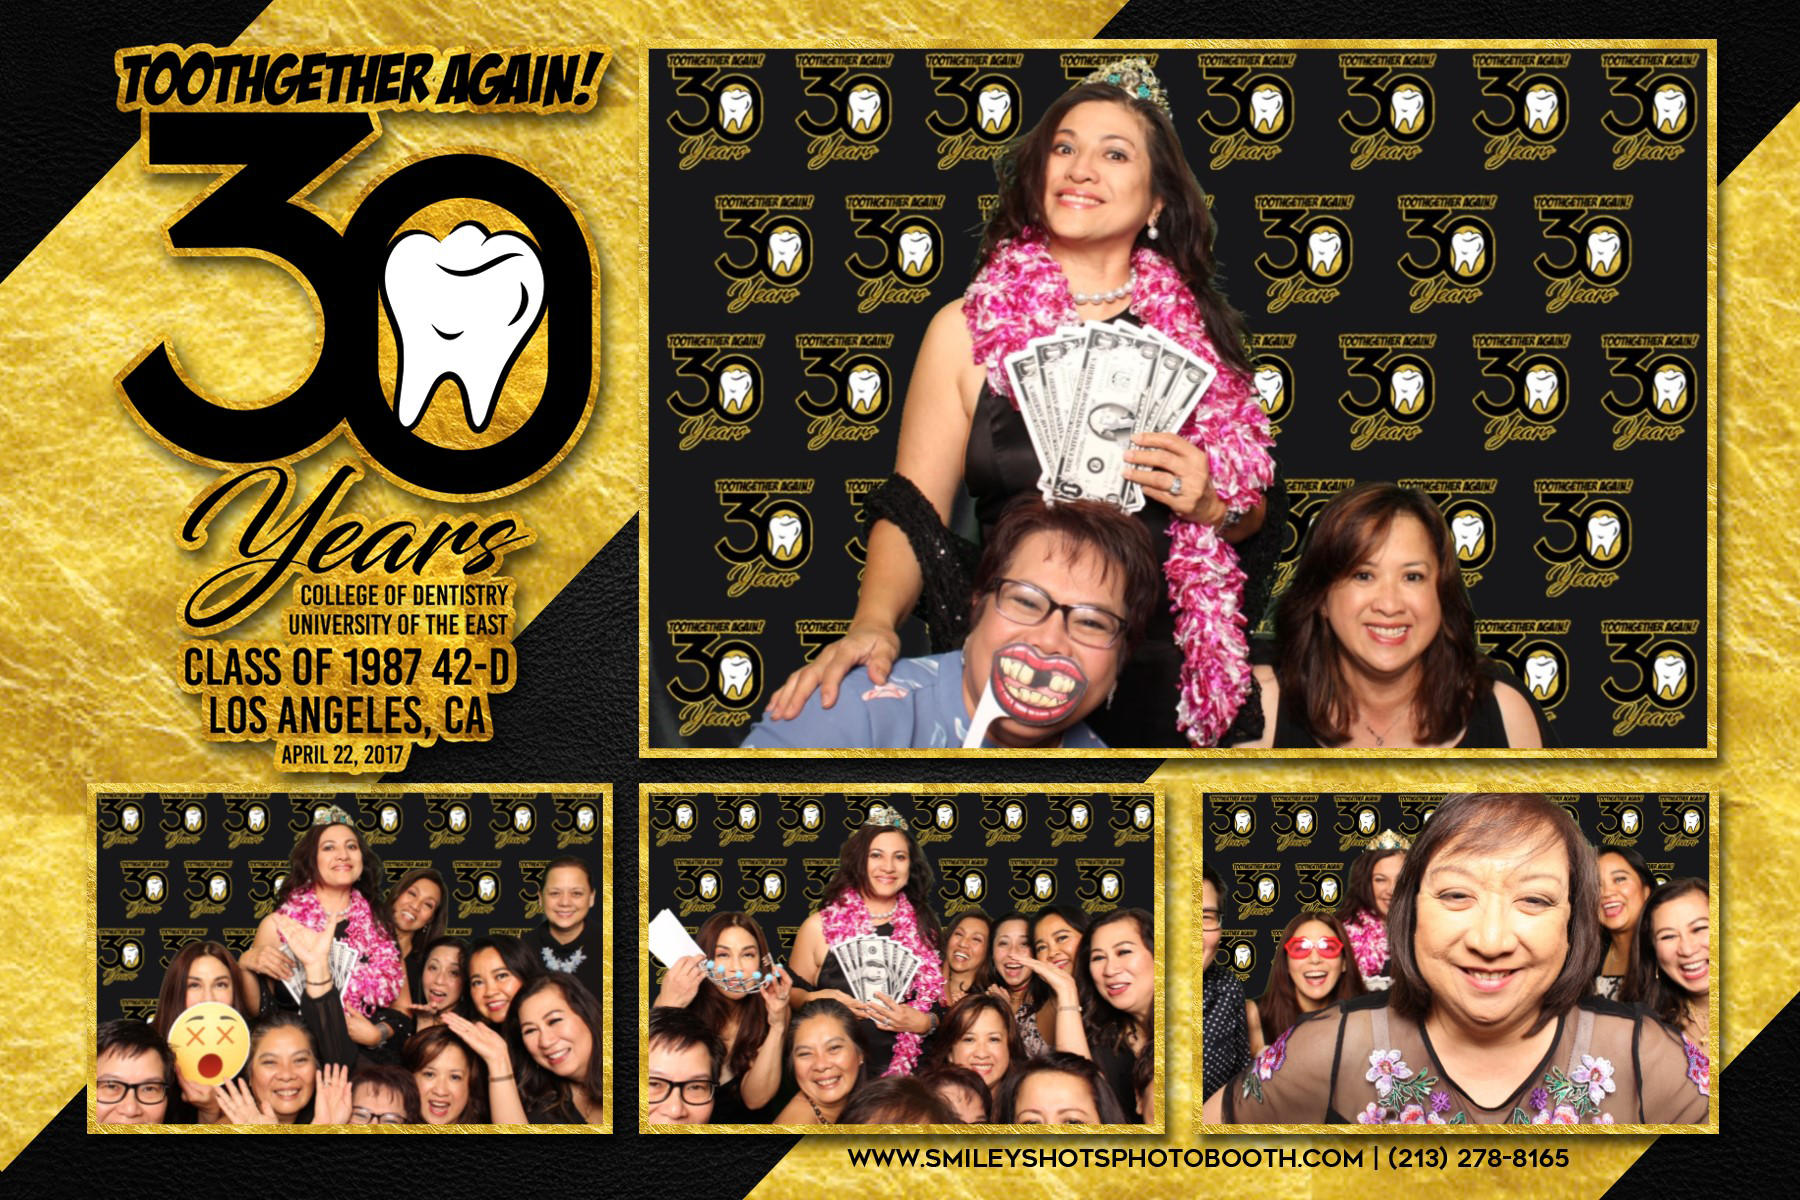 30th Years Dental UE Smiley Shots Photo Booth Photobooth (35).png